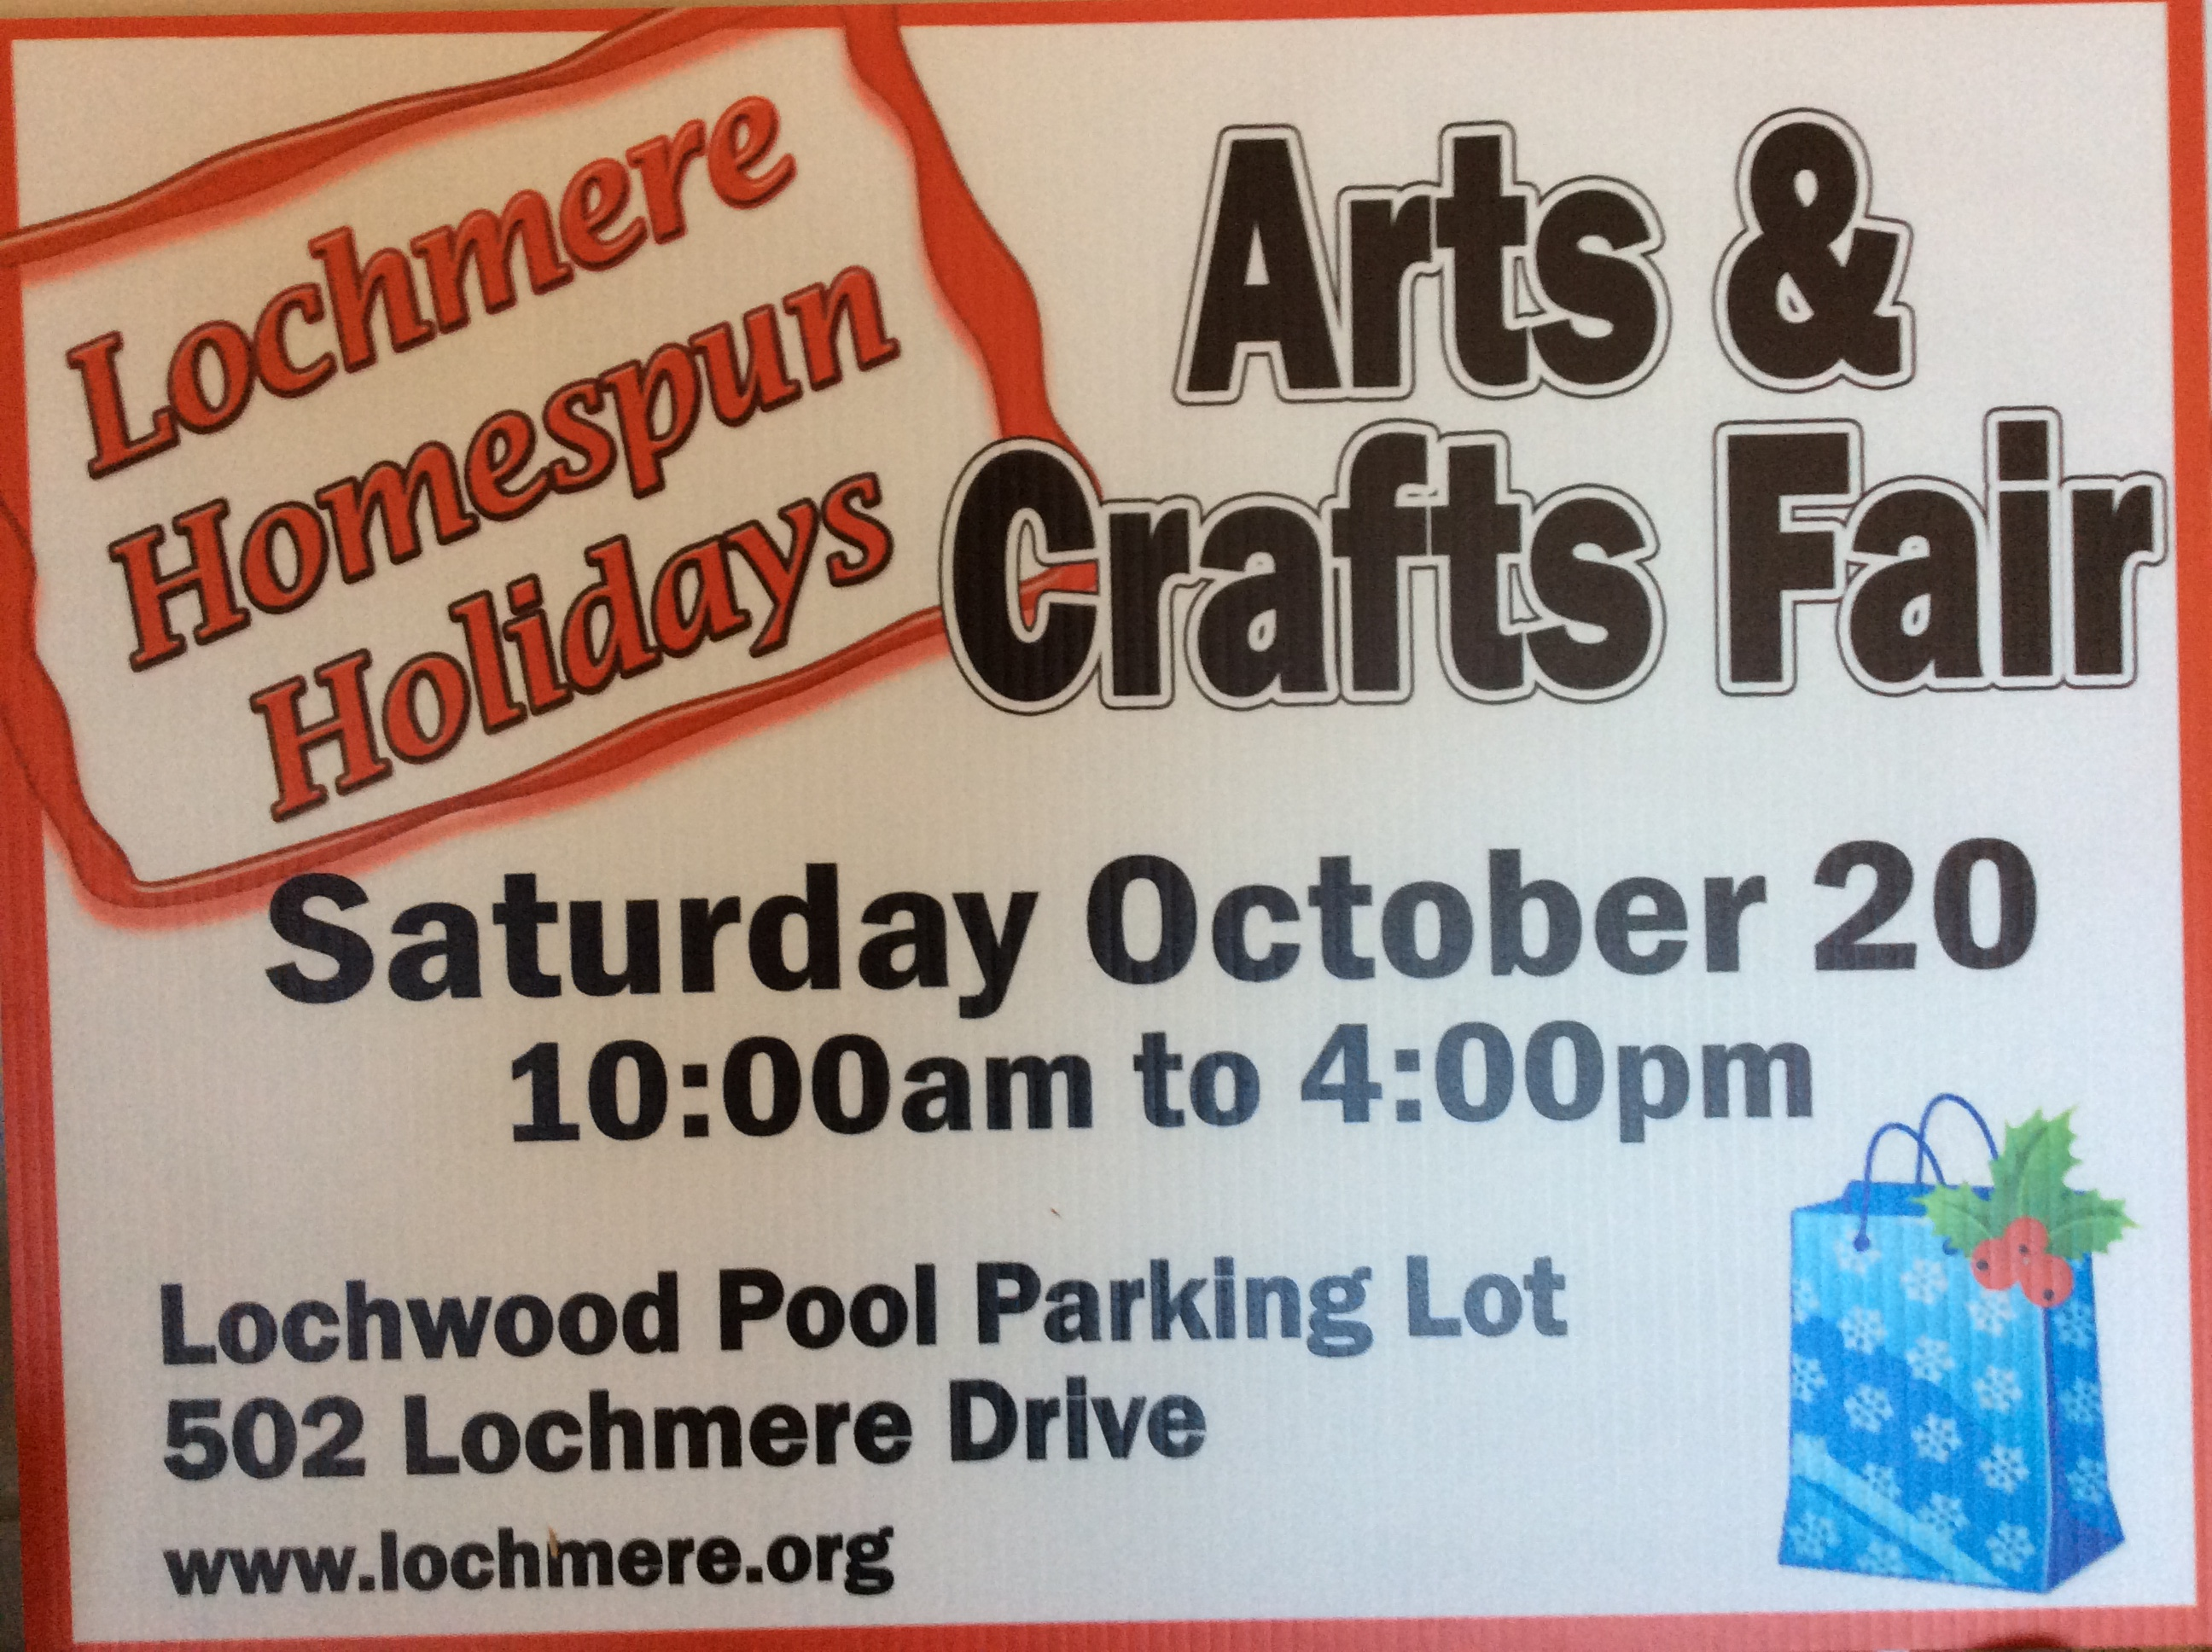 Don't Miss Lochmere's First Home Spun Holiday Arts & Crafts Fair On October 20